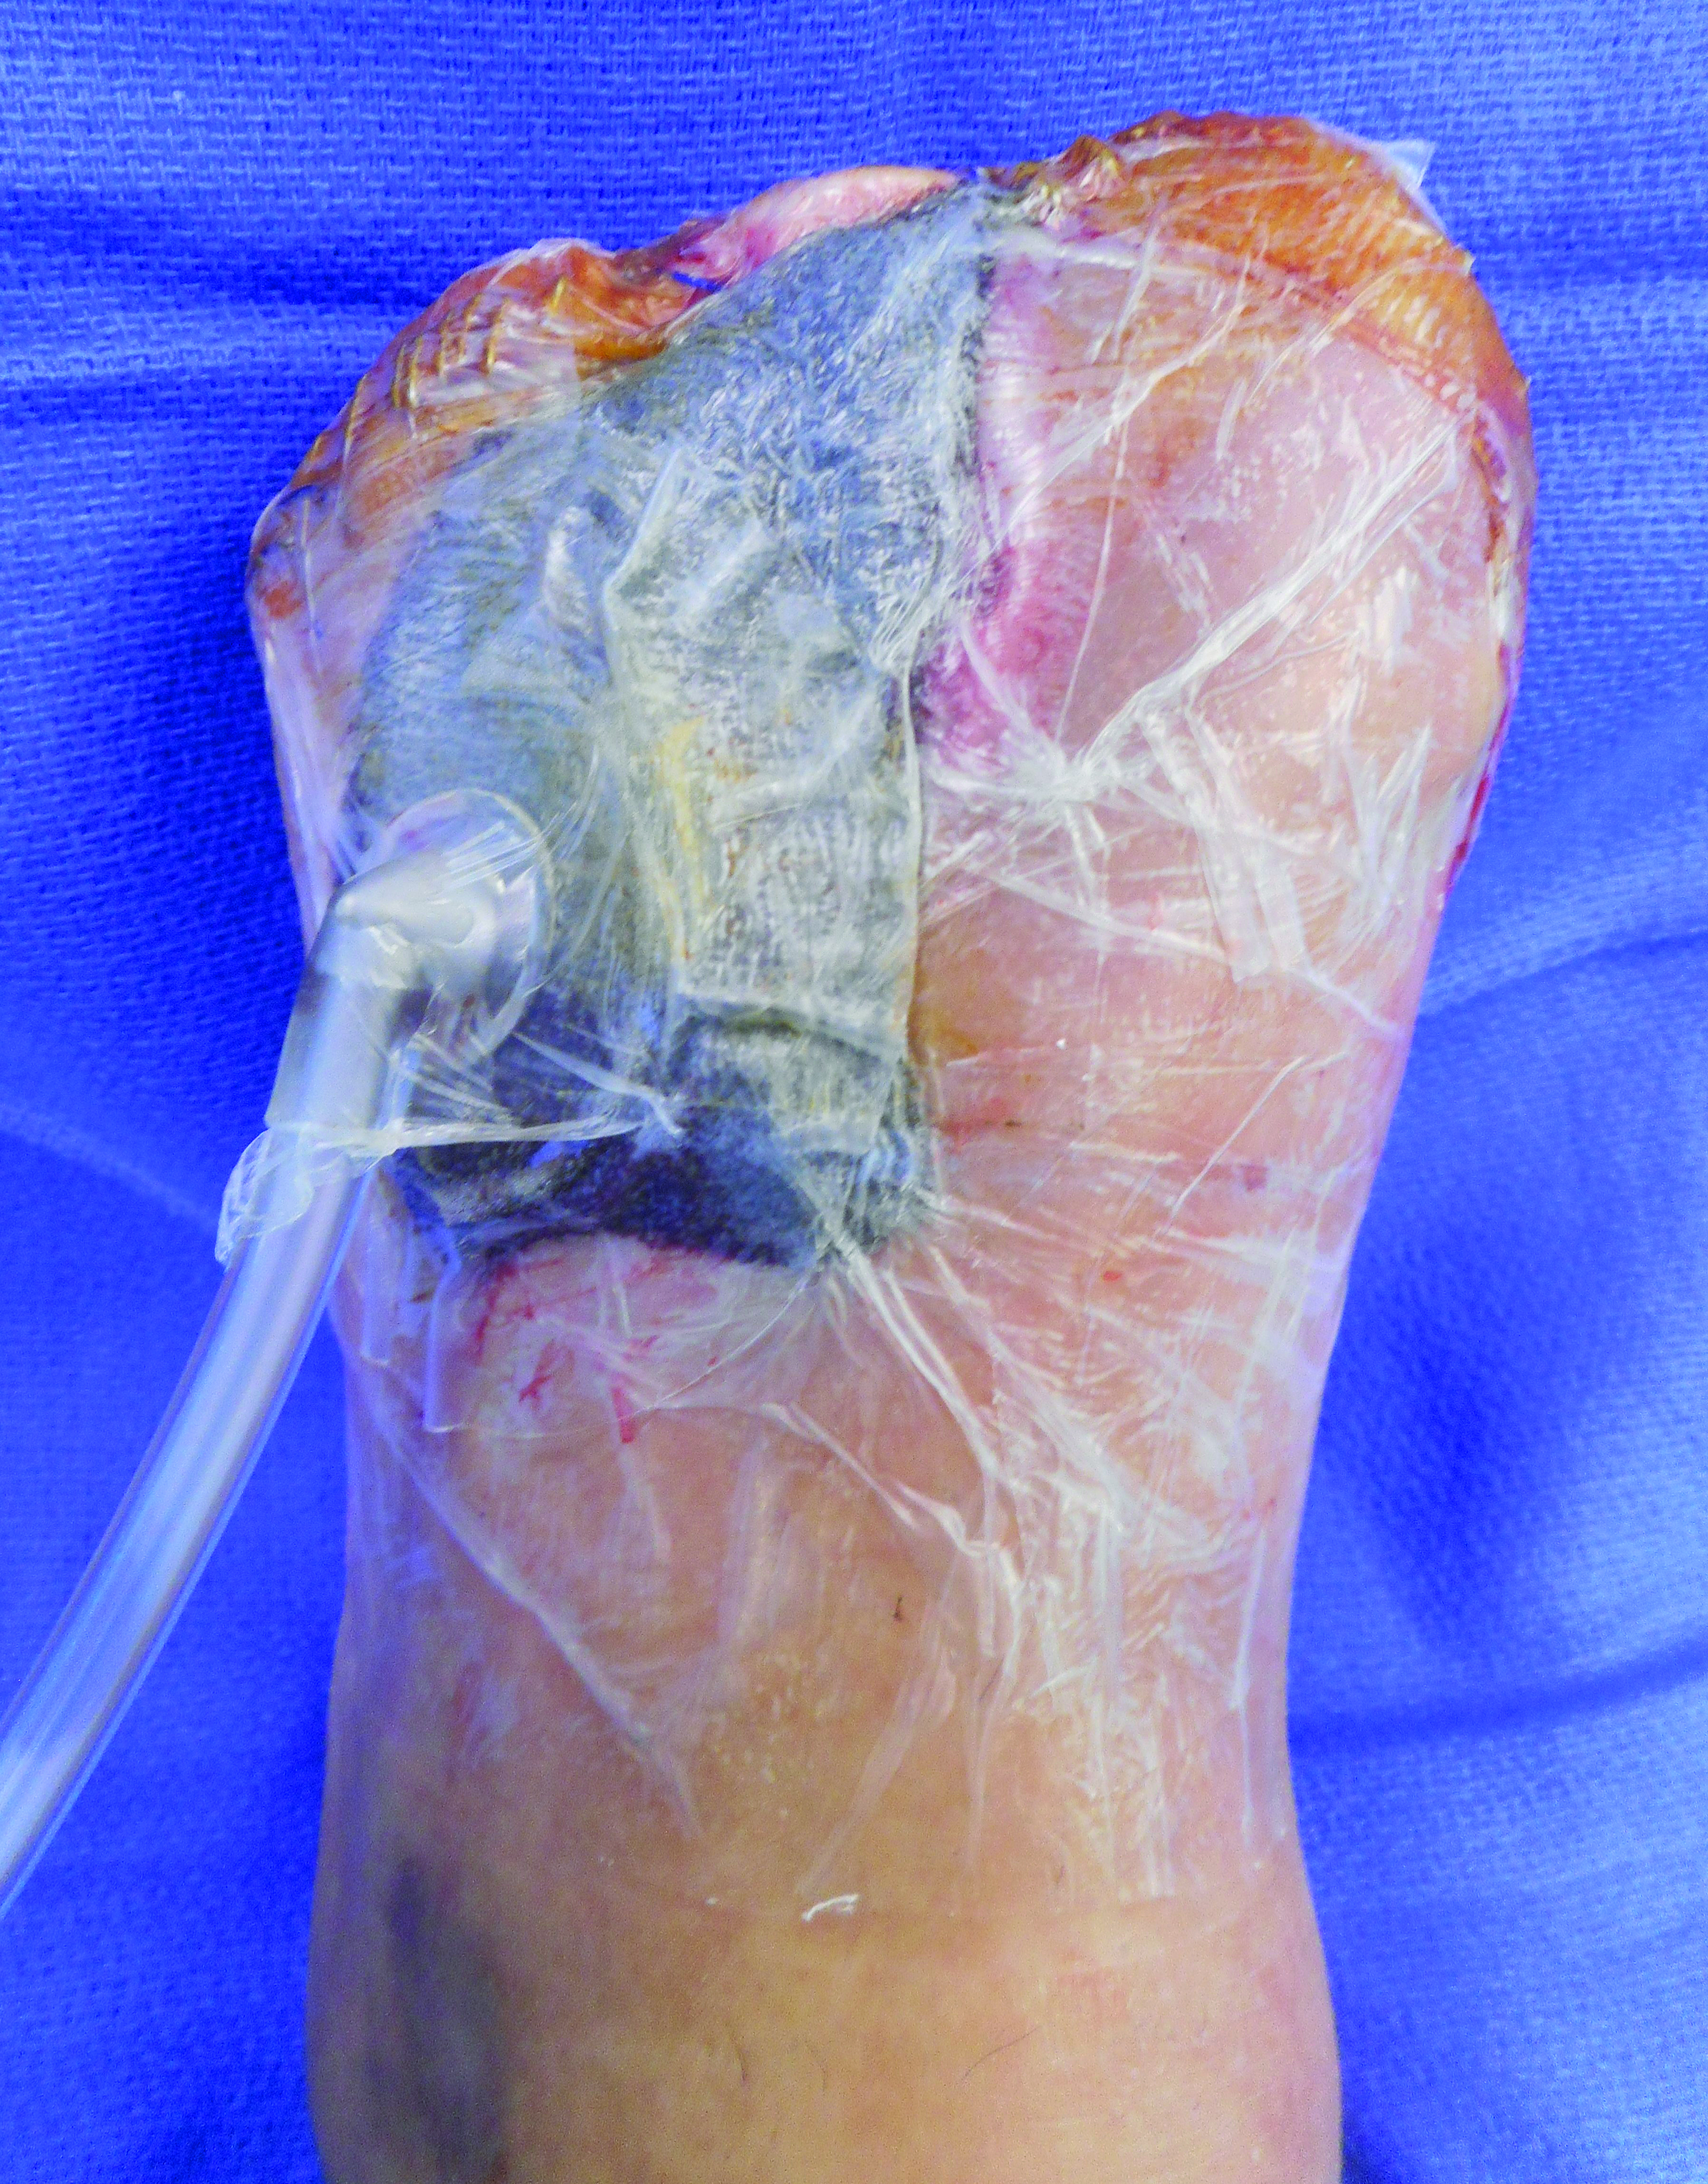 Following the application of antibiotic-loaded PMMA beads, surgeons utilized negative pressure wound therapy on the dorsal aspect of the left foot.